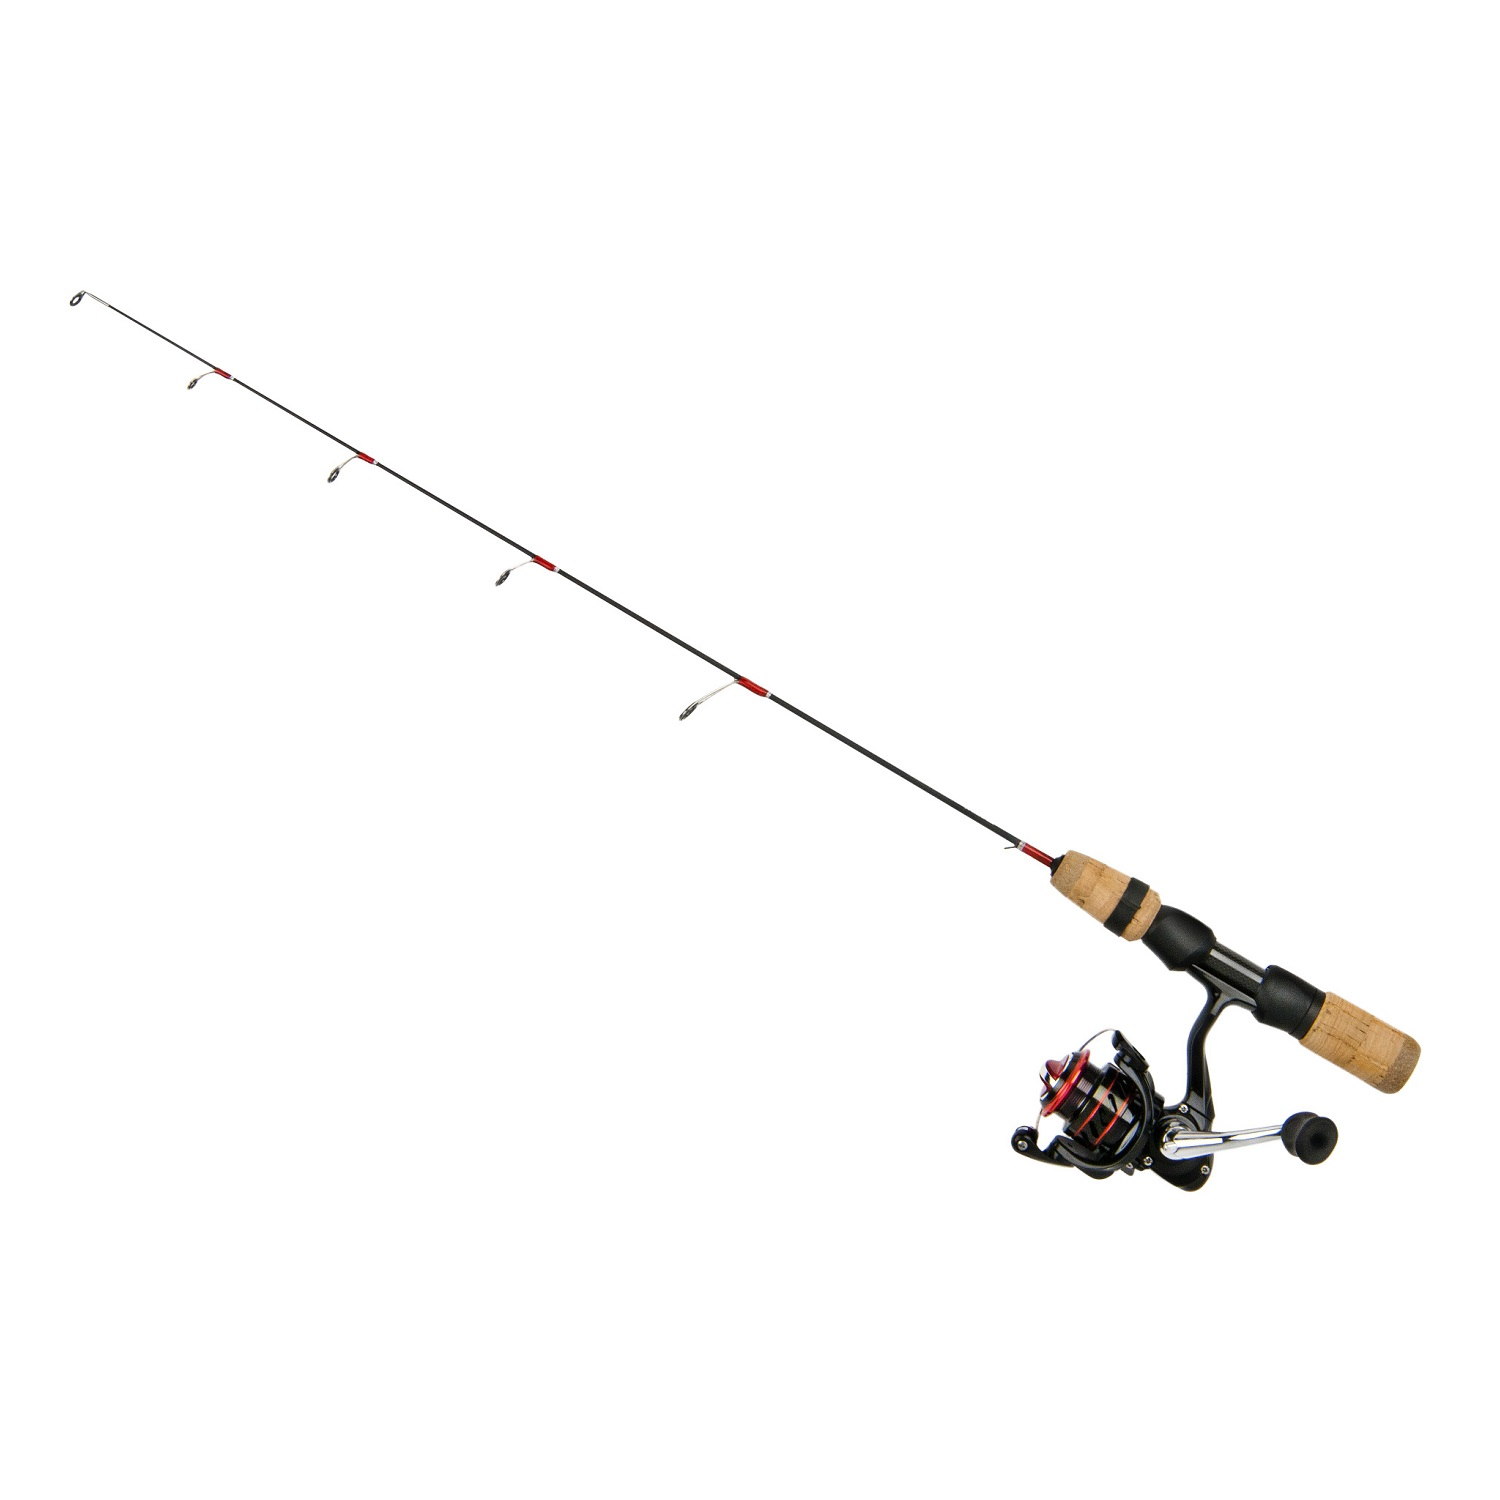 Frabill 371 Straight Line Bro 35in Quick Tip Spinning Combo